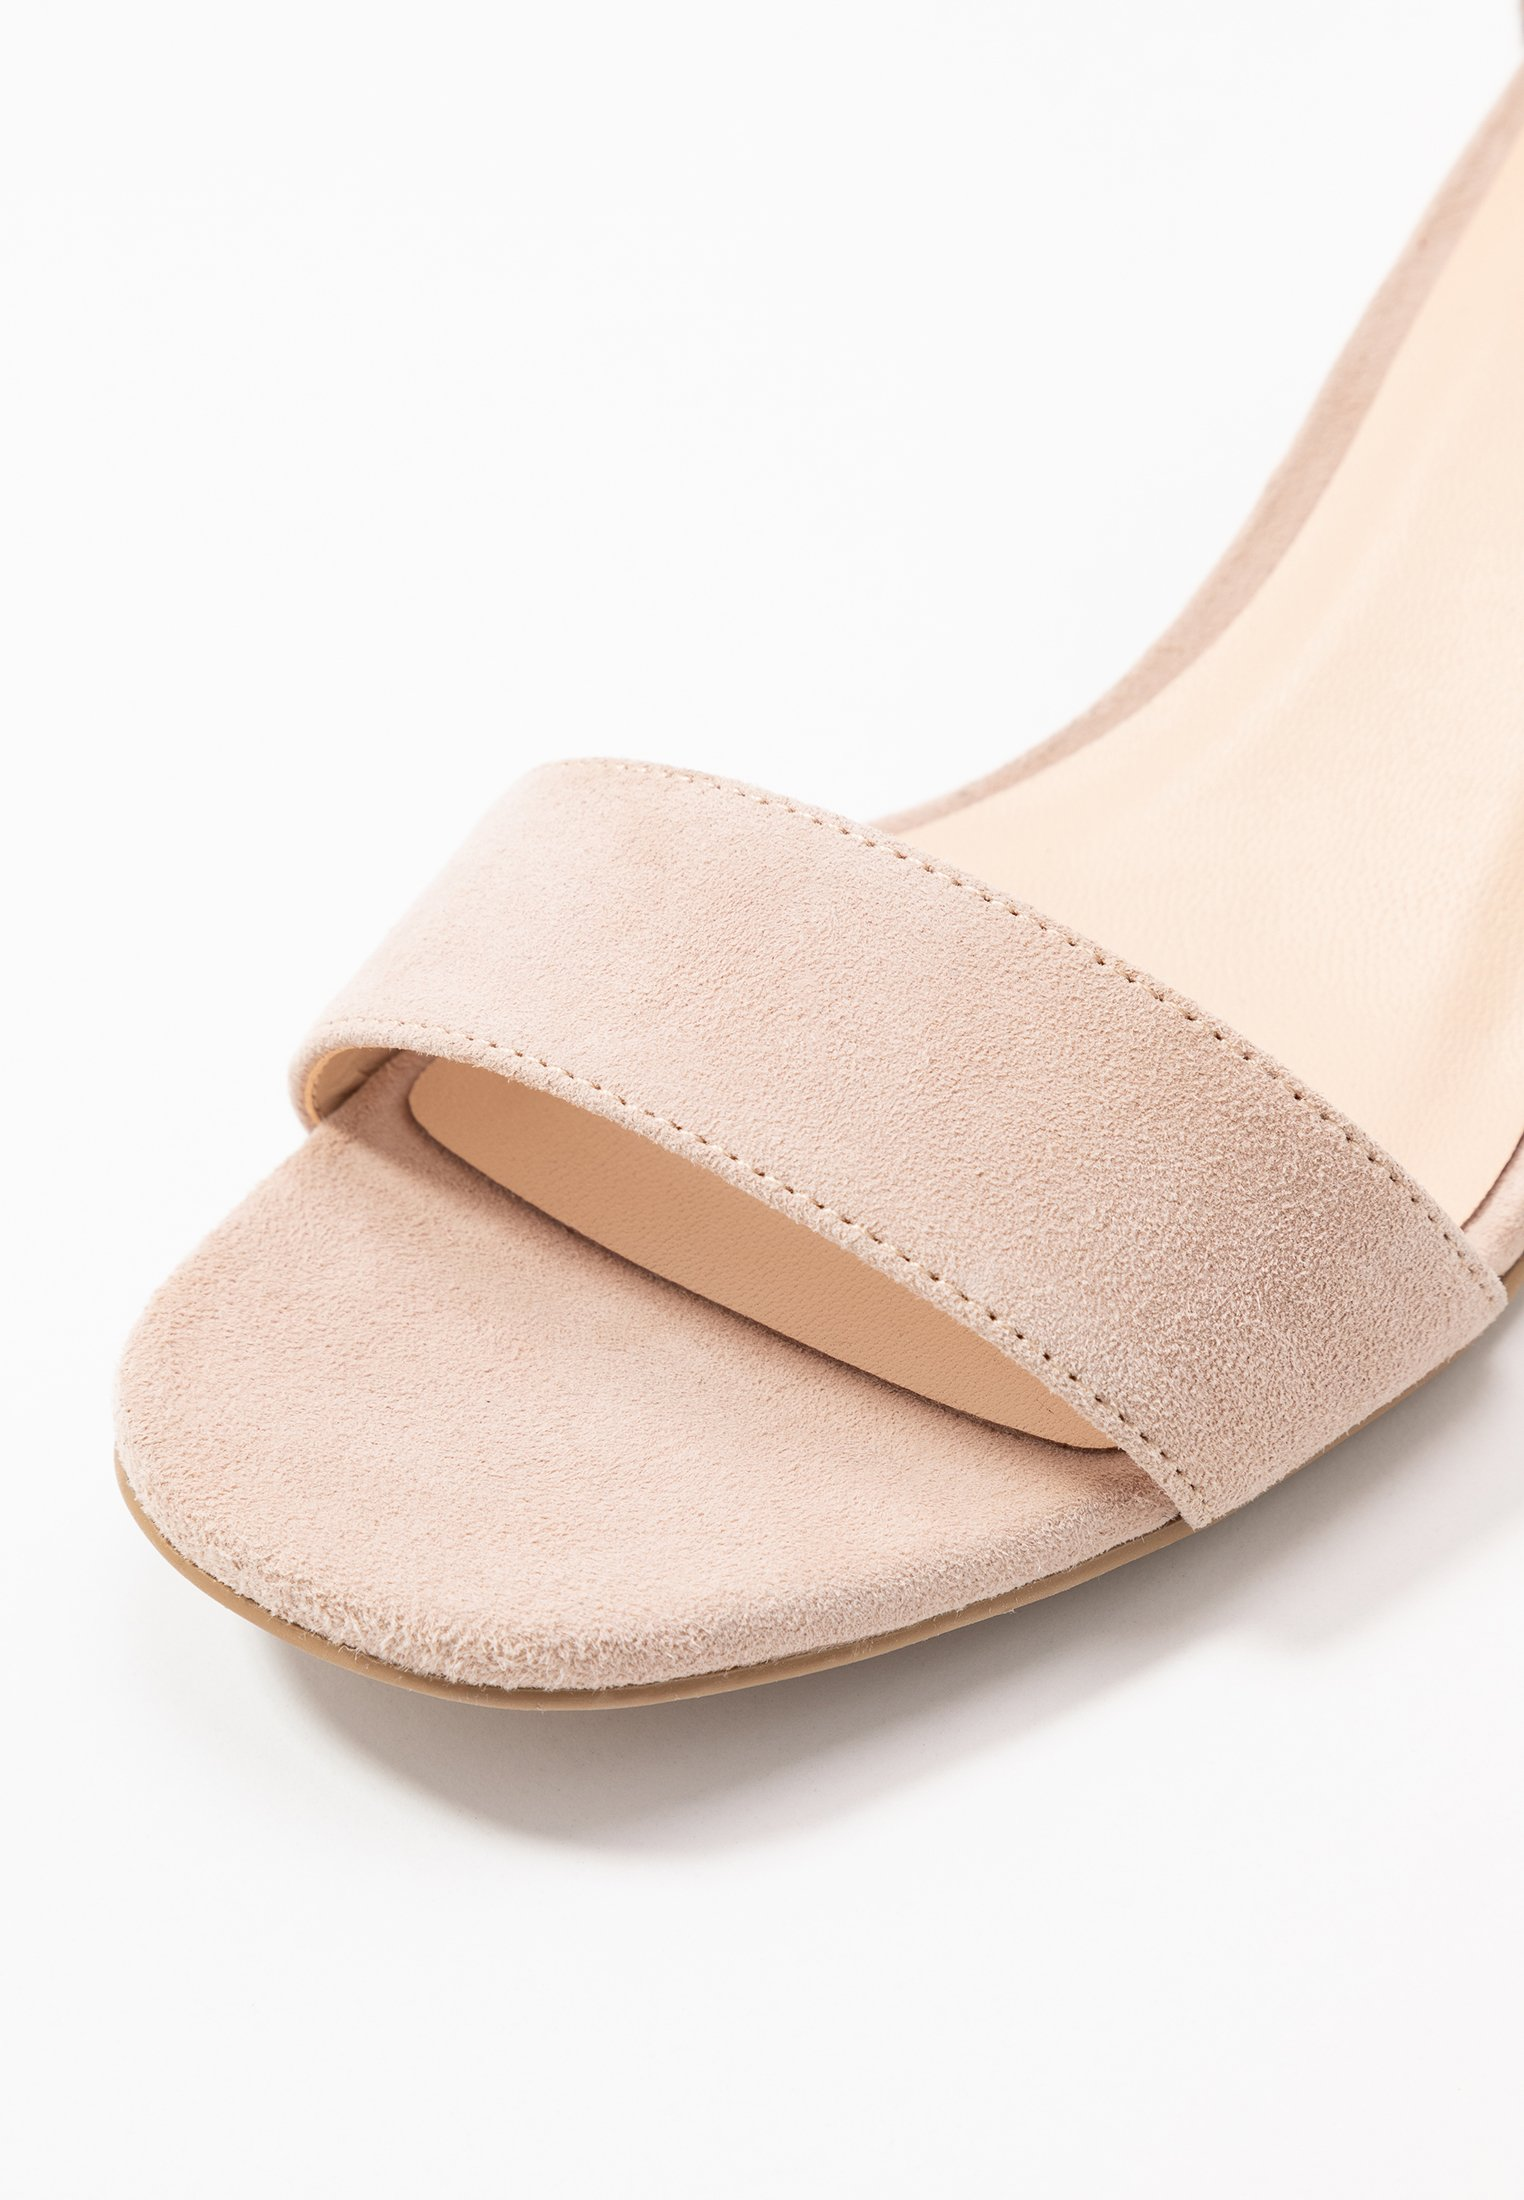 Cheapest Low Cost Women's Shoes Anna Field LEATHER  Sandals nude cHCjO3w8C bFYqQmBZP